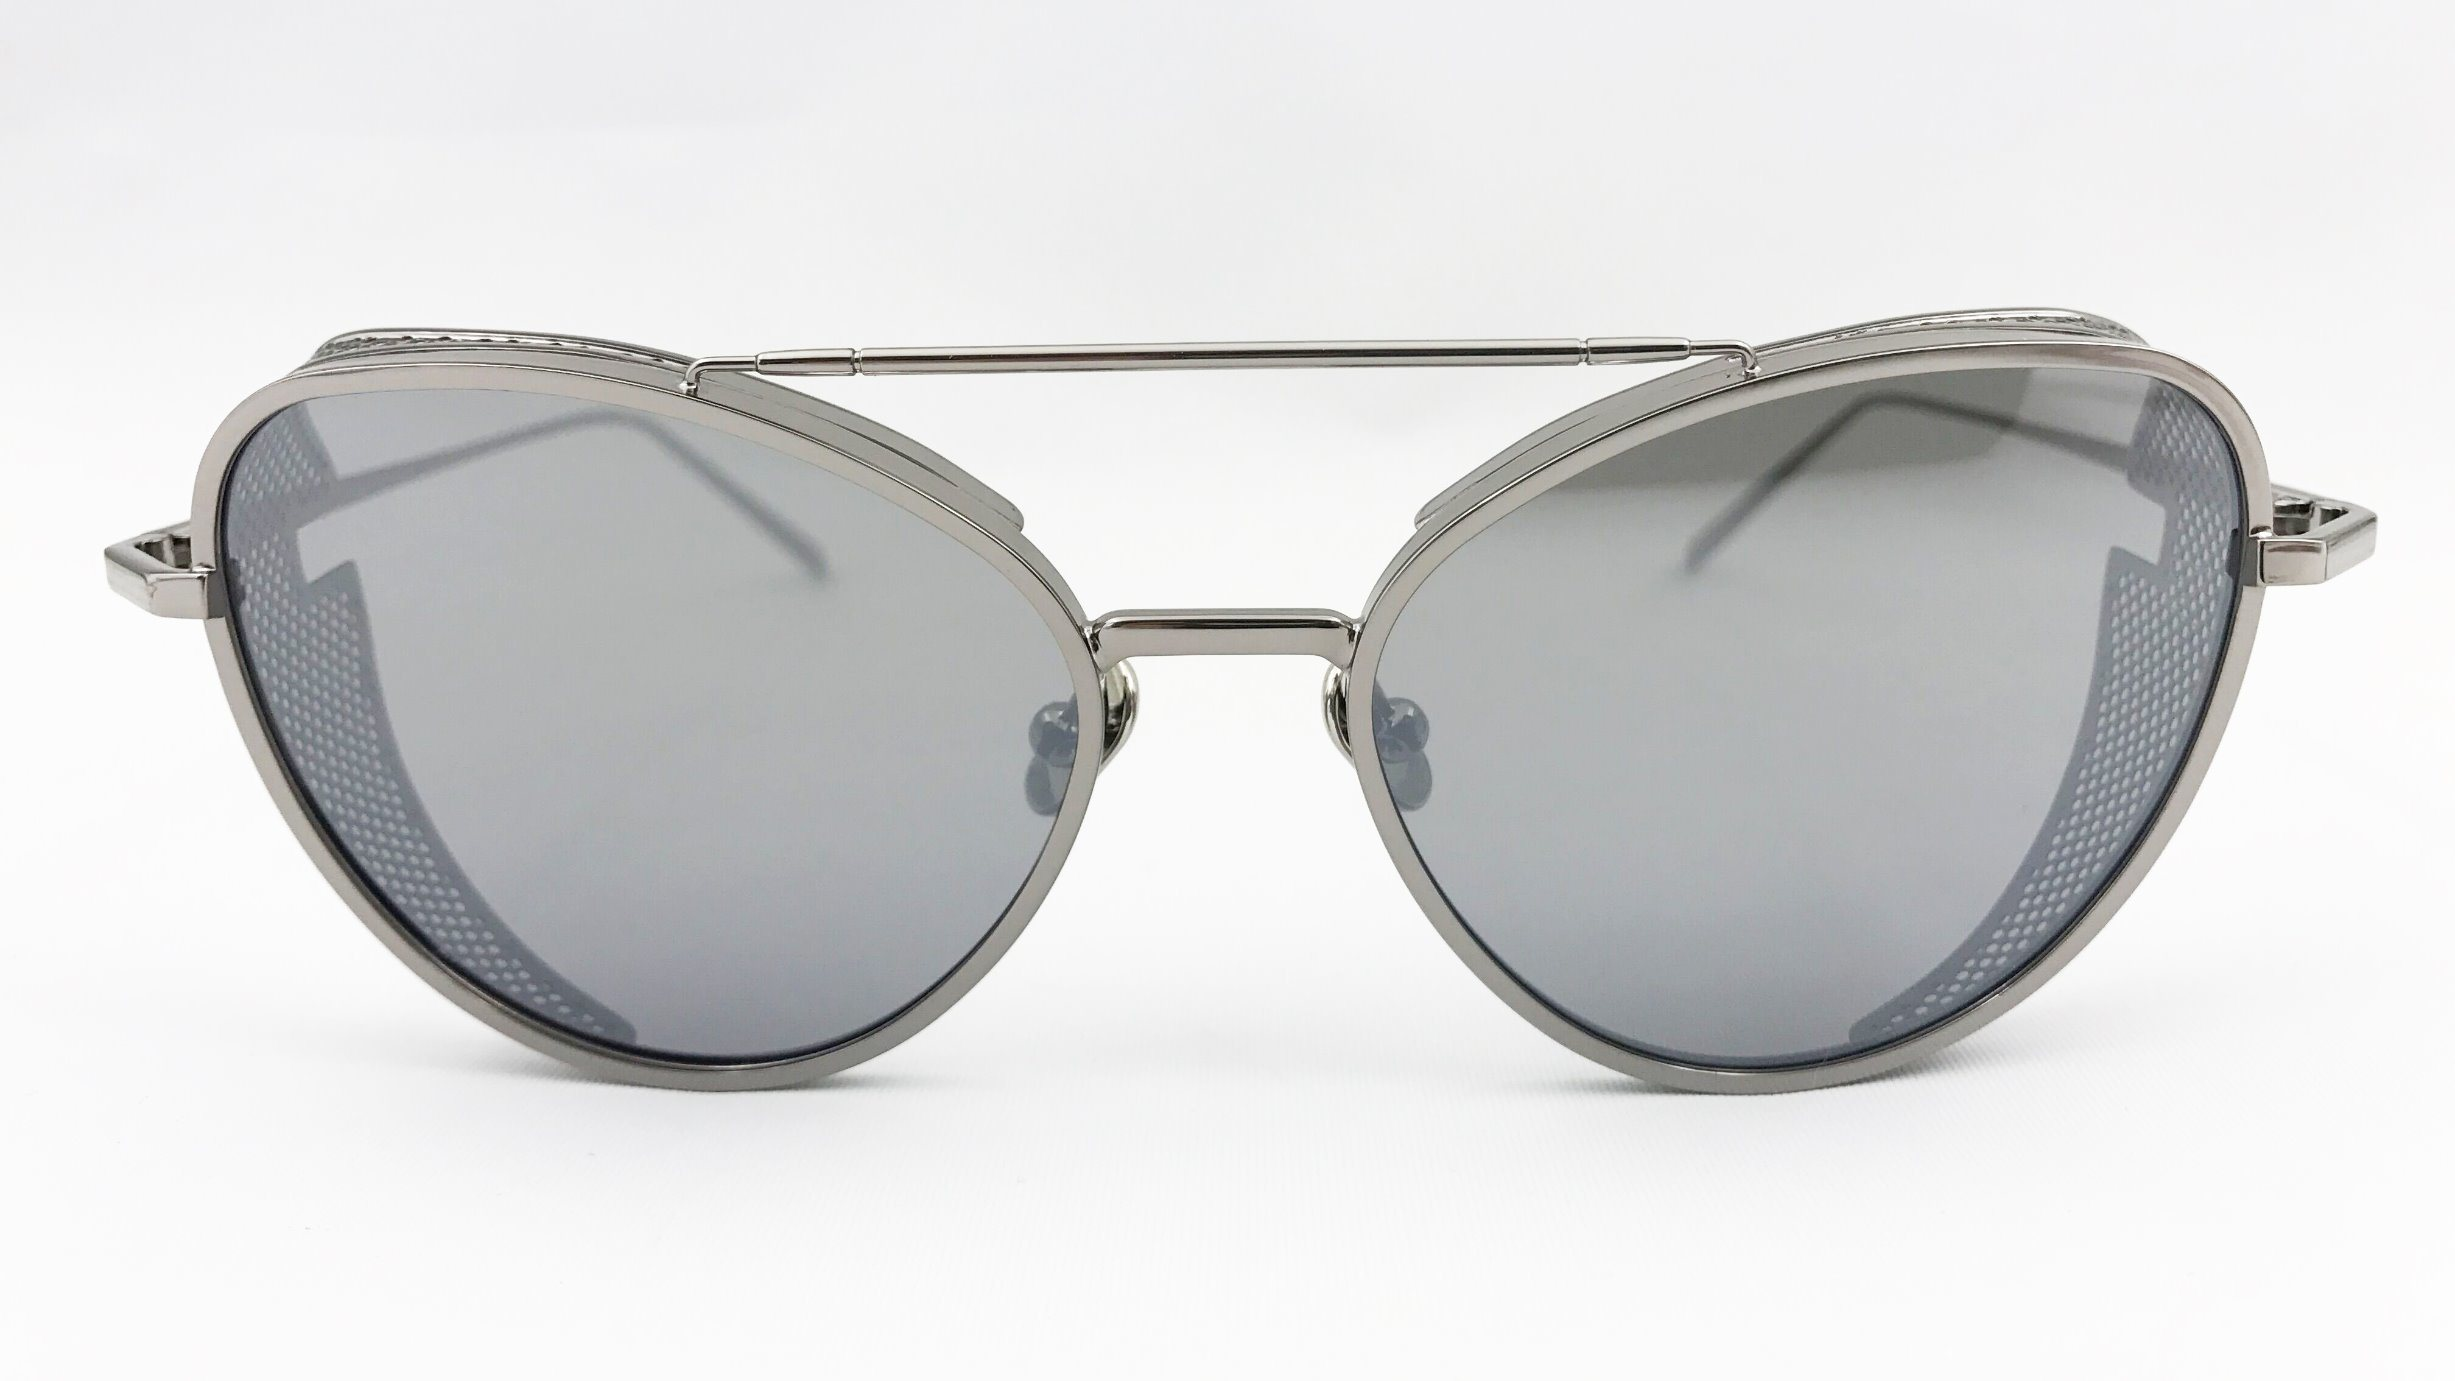 Special Design Metal Sunglasses with Nylon Lens and Tube Decor Eh1612